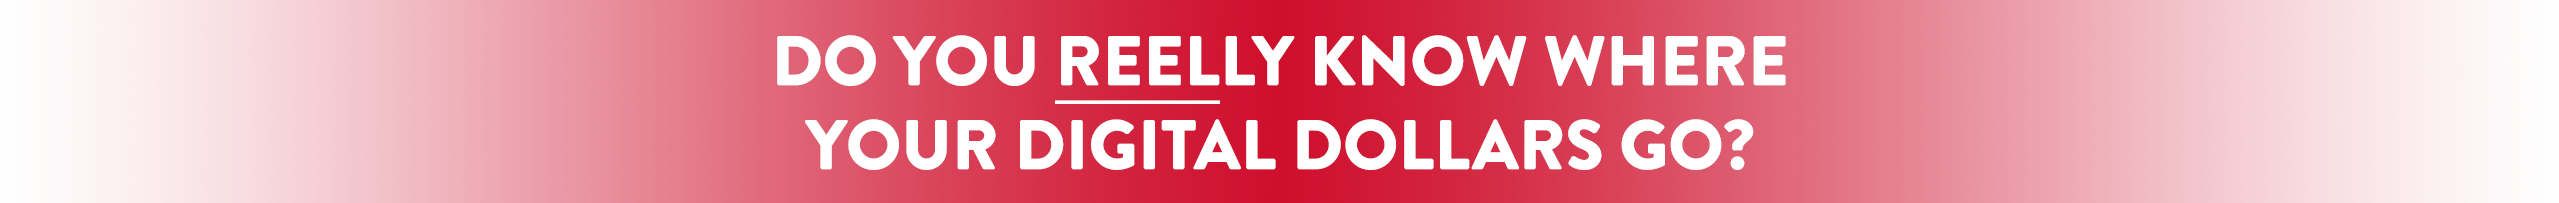 Do you reelly know where your digital dollars go?